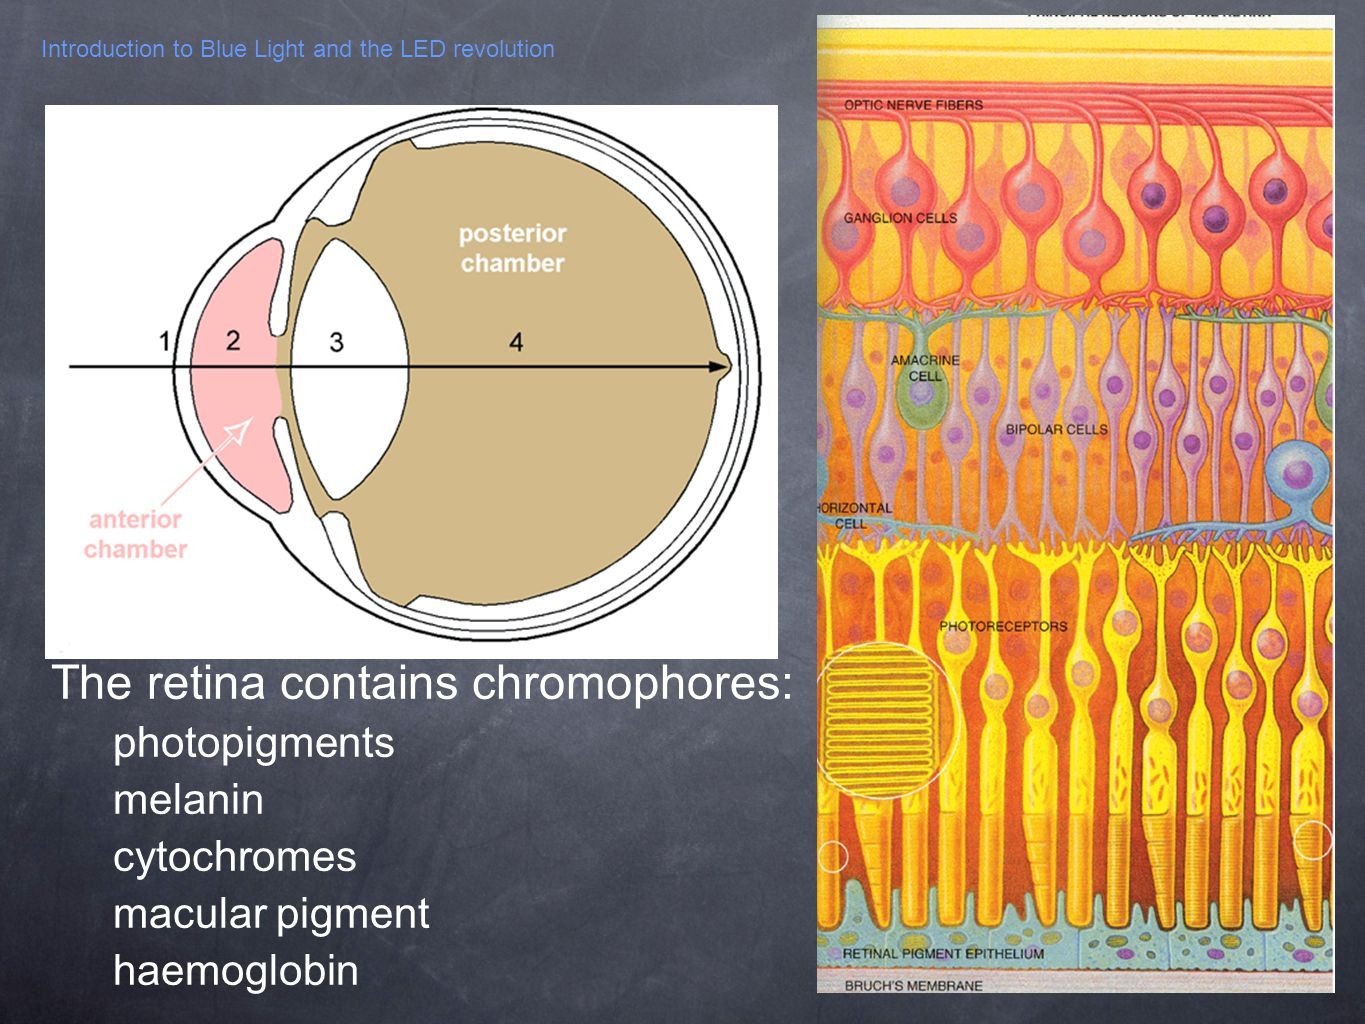 Introduction to Blue Light and the LED revolution The retina contains chromophores: photopigments melanin cytochromes macular pigment haemoglobin